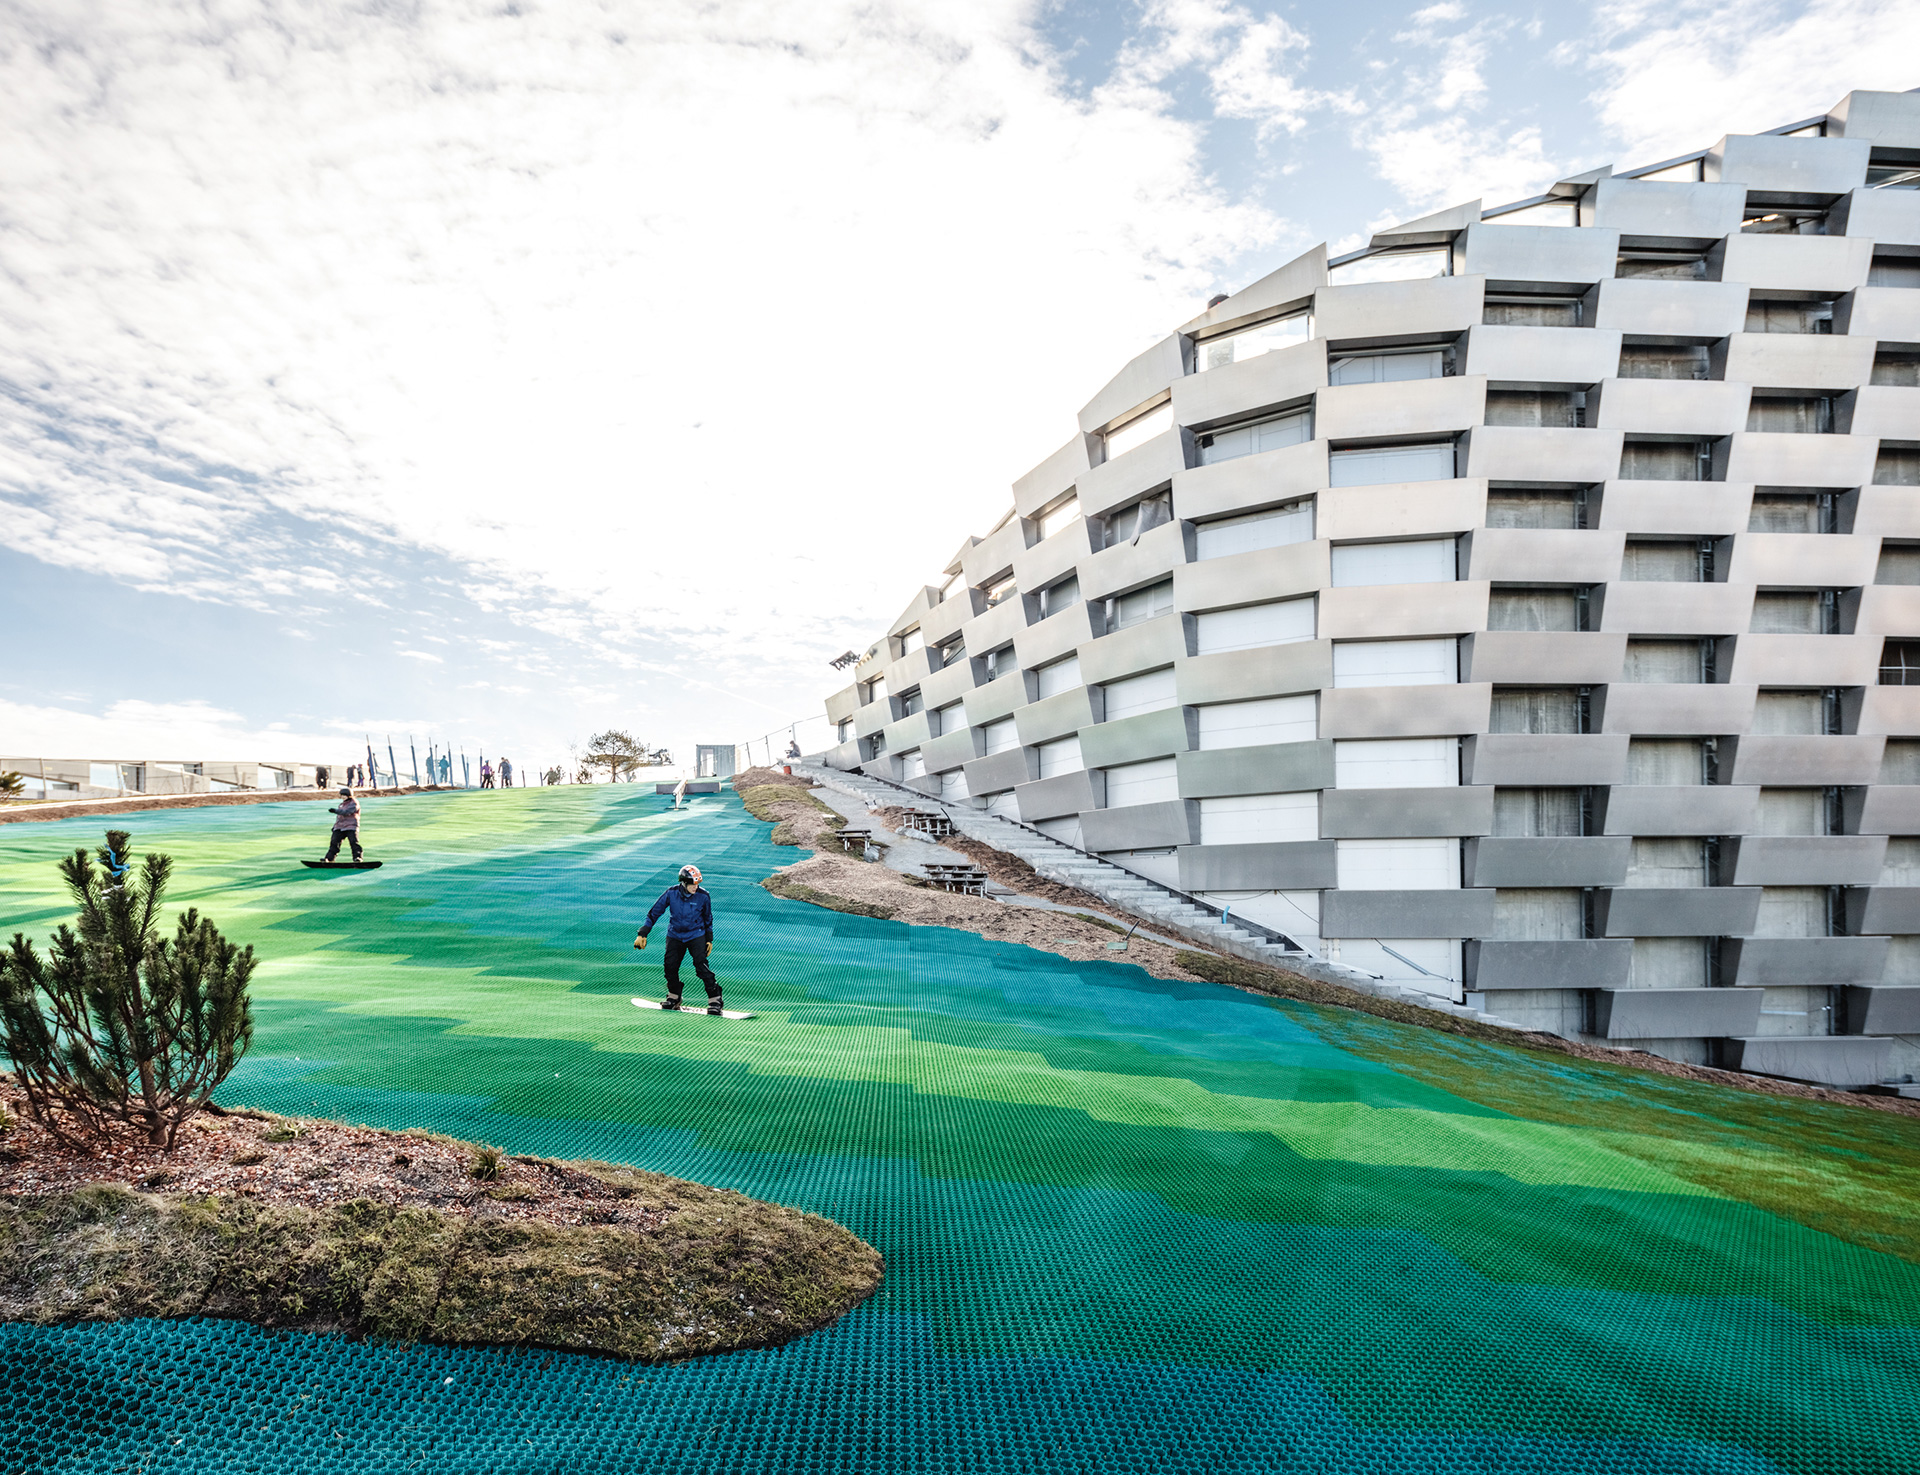 Locals and tourists can ski on the roof of the waste-to-energy plant throughout the year | Copenhill | Denmark | BIG | Bjarke Ingles Group | STIRworld